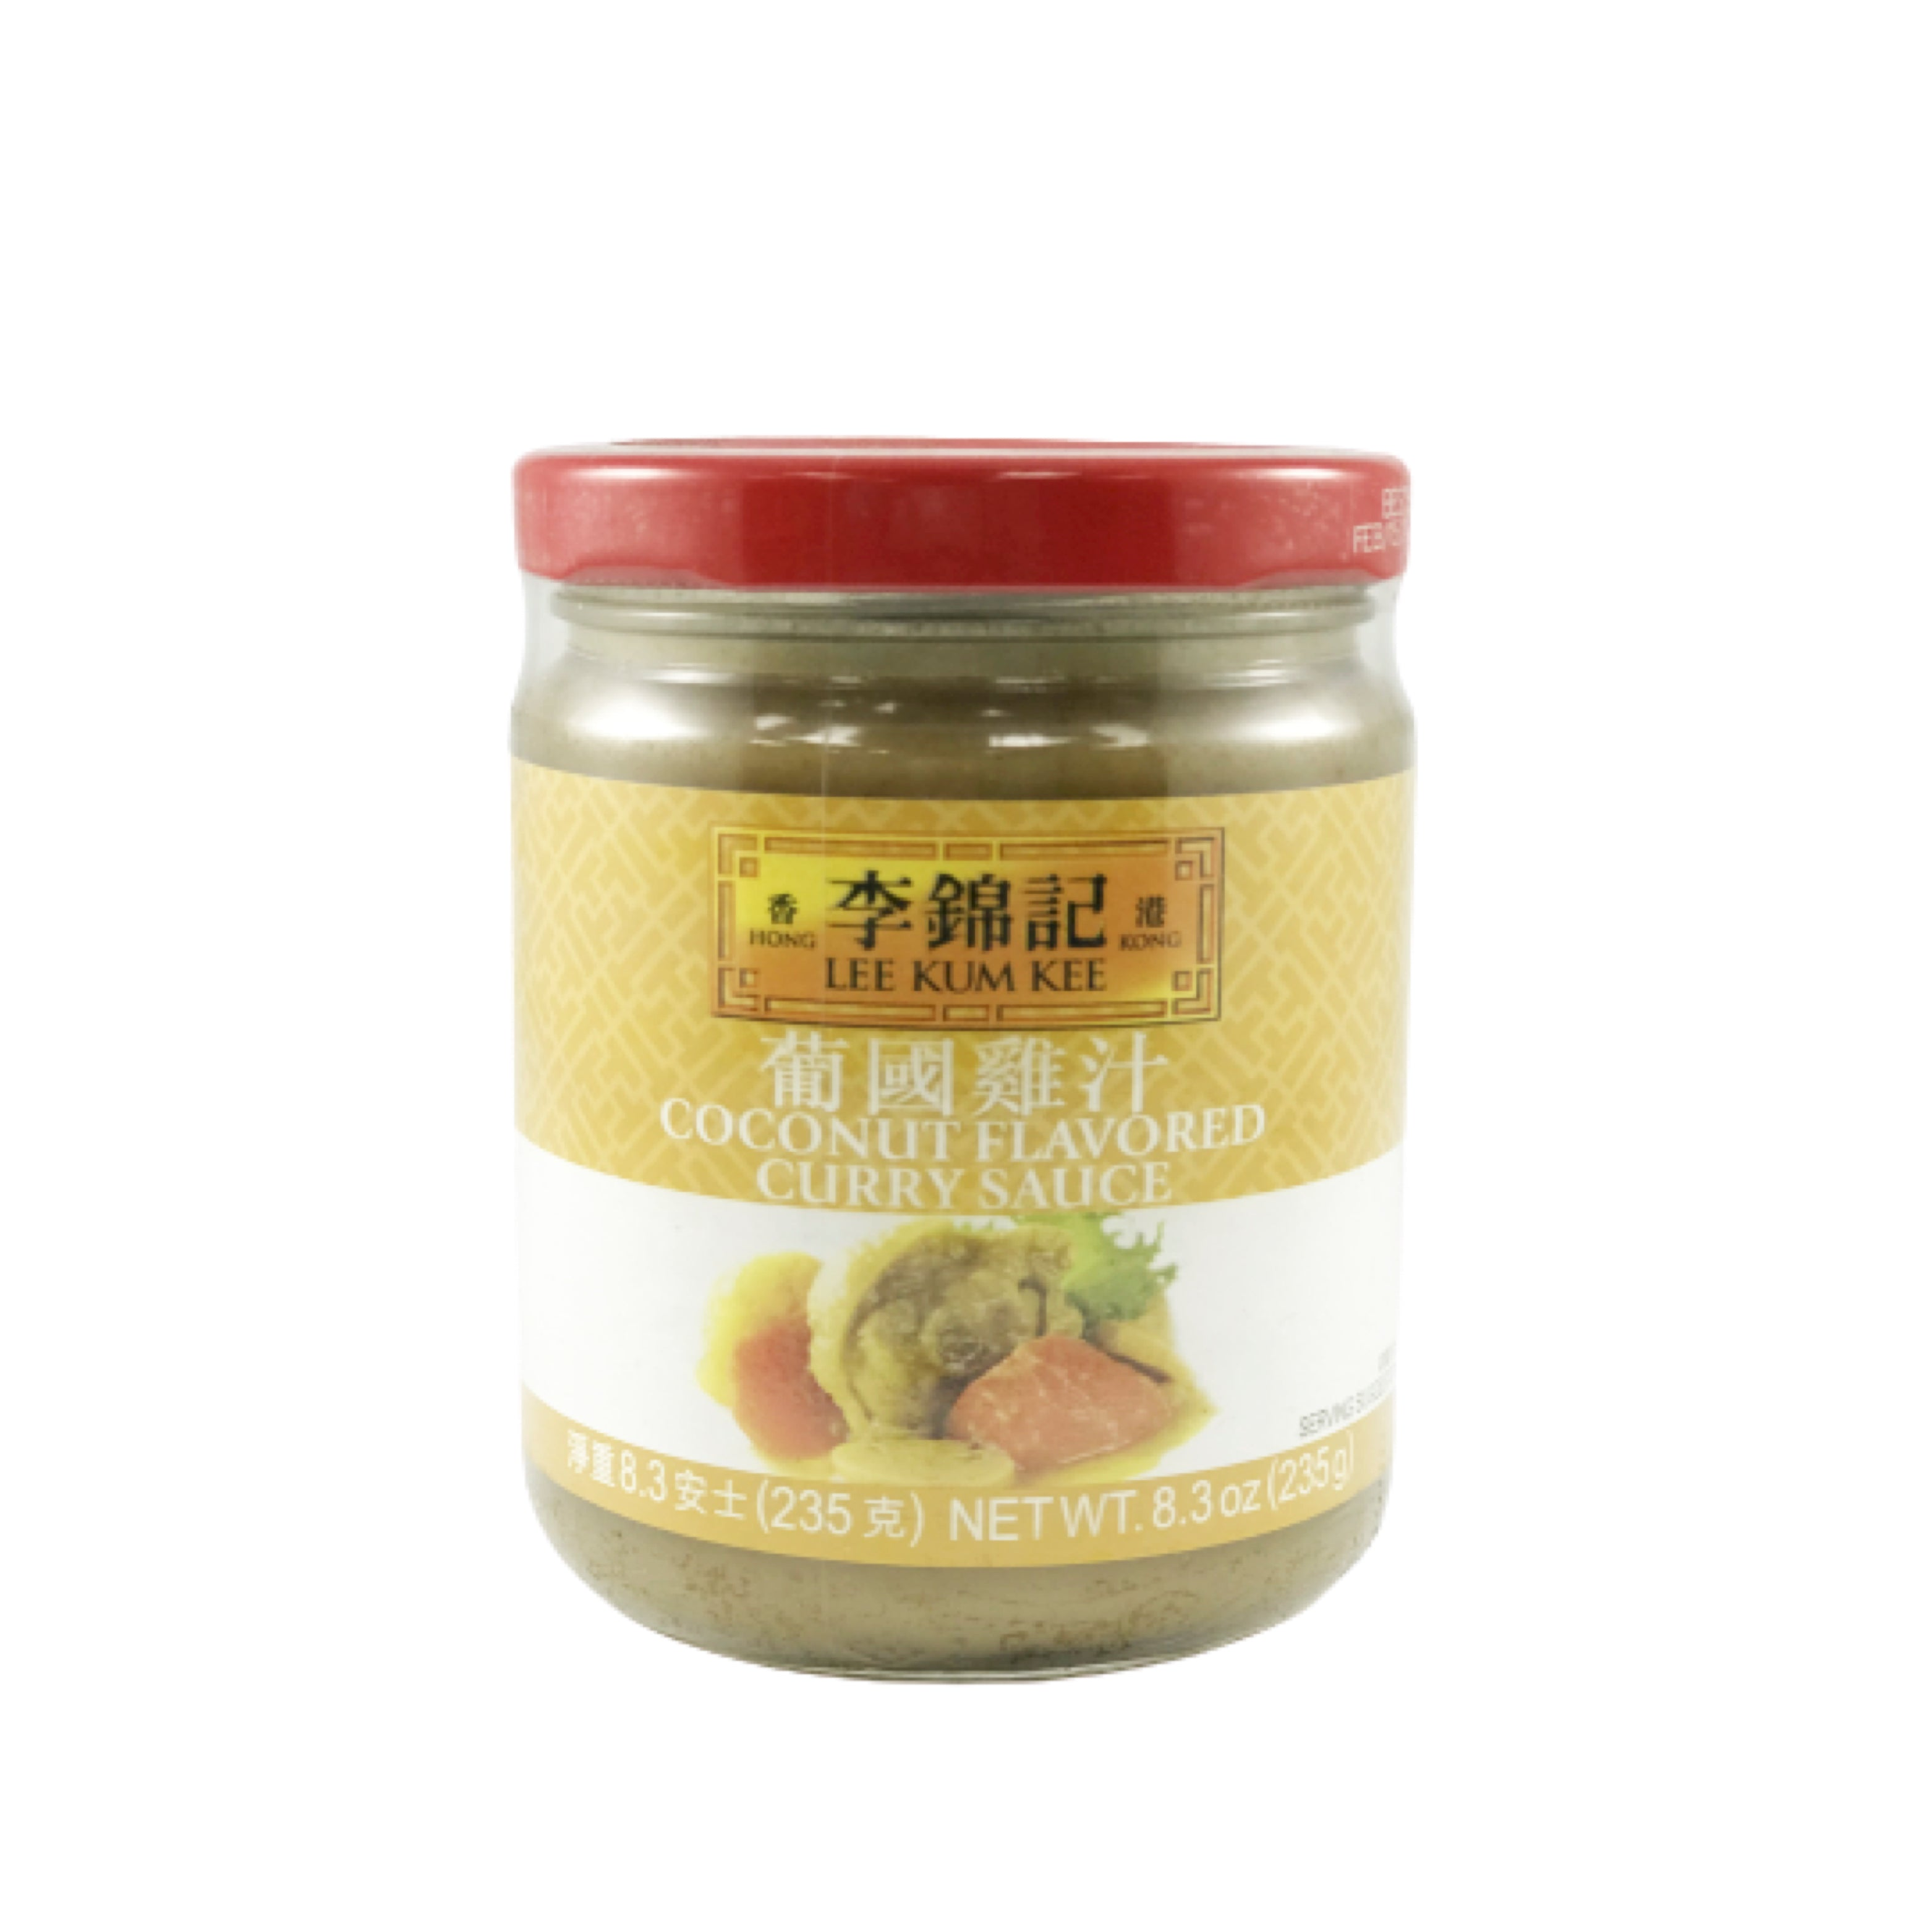 Lee Kum Kee Coconut Flavored Curry Sauce 李錦記 葡國雞汁 8.3oz